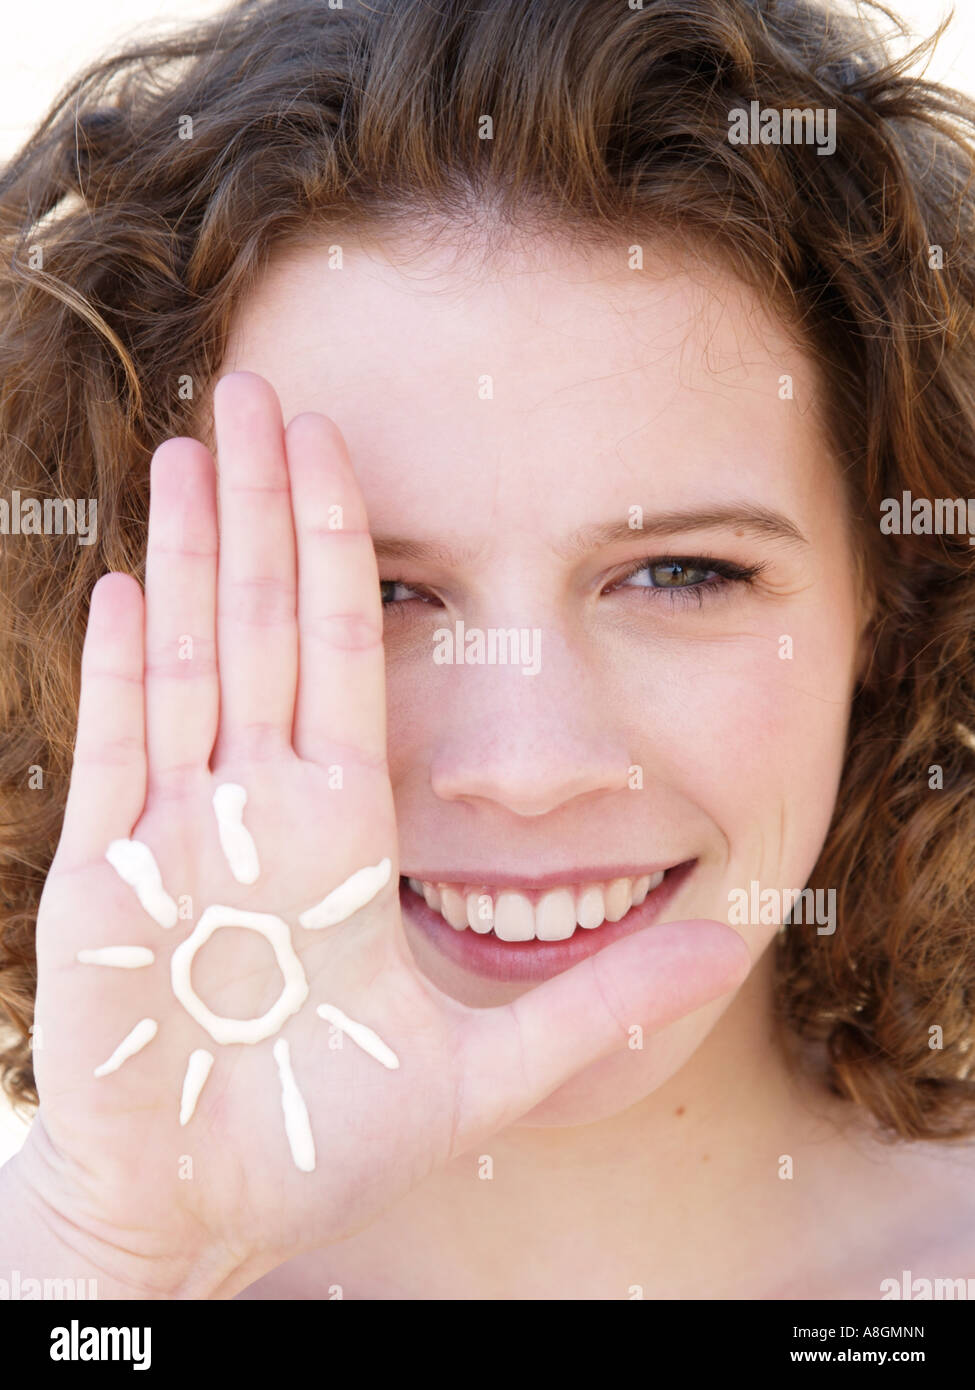 Young woman smiling with figure of a sun drawn in suncream on her hand Fair skin needs to be protected against uv - Stock Image